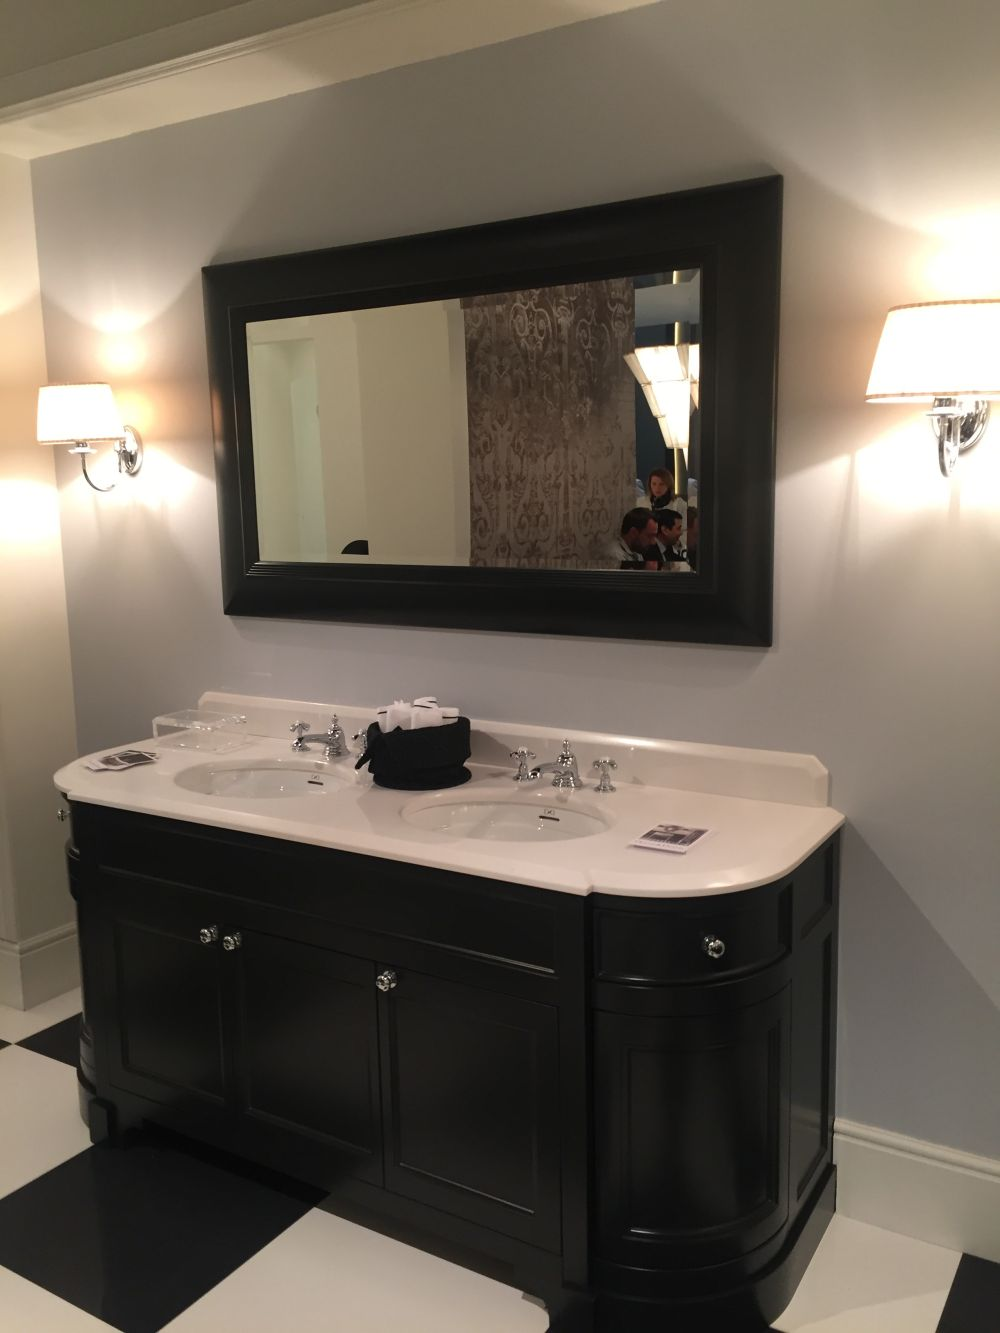 vanities grey of mirror with unit cabinets basin bathrooms hung floating black wall and double mirrors tallboy set best gorgeous contemporary rustic sink antique tops a bathroom size units small cheap vanity modern dark design wood full cabinet